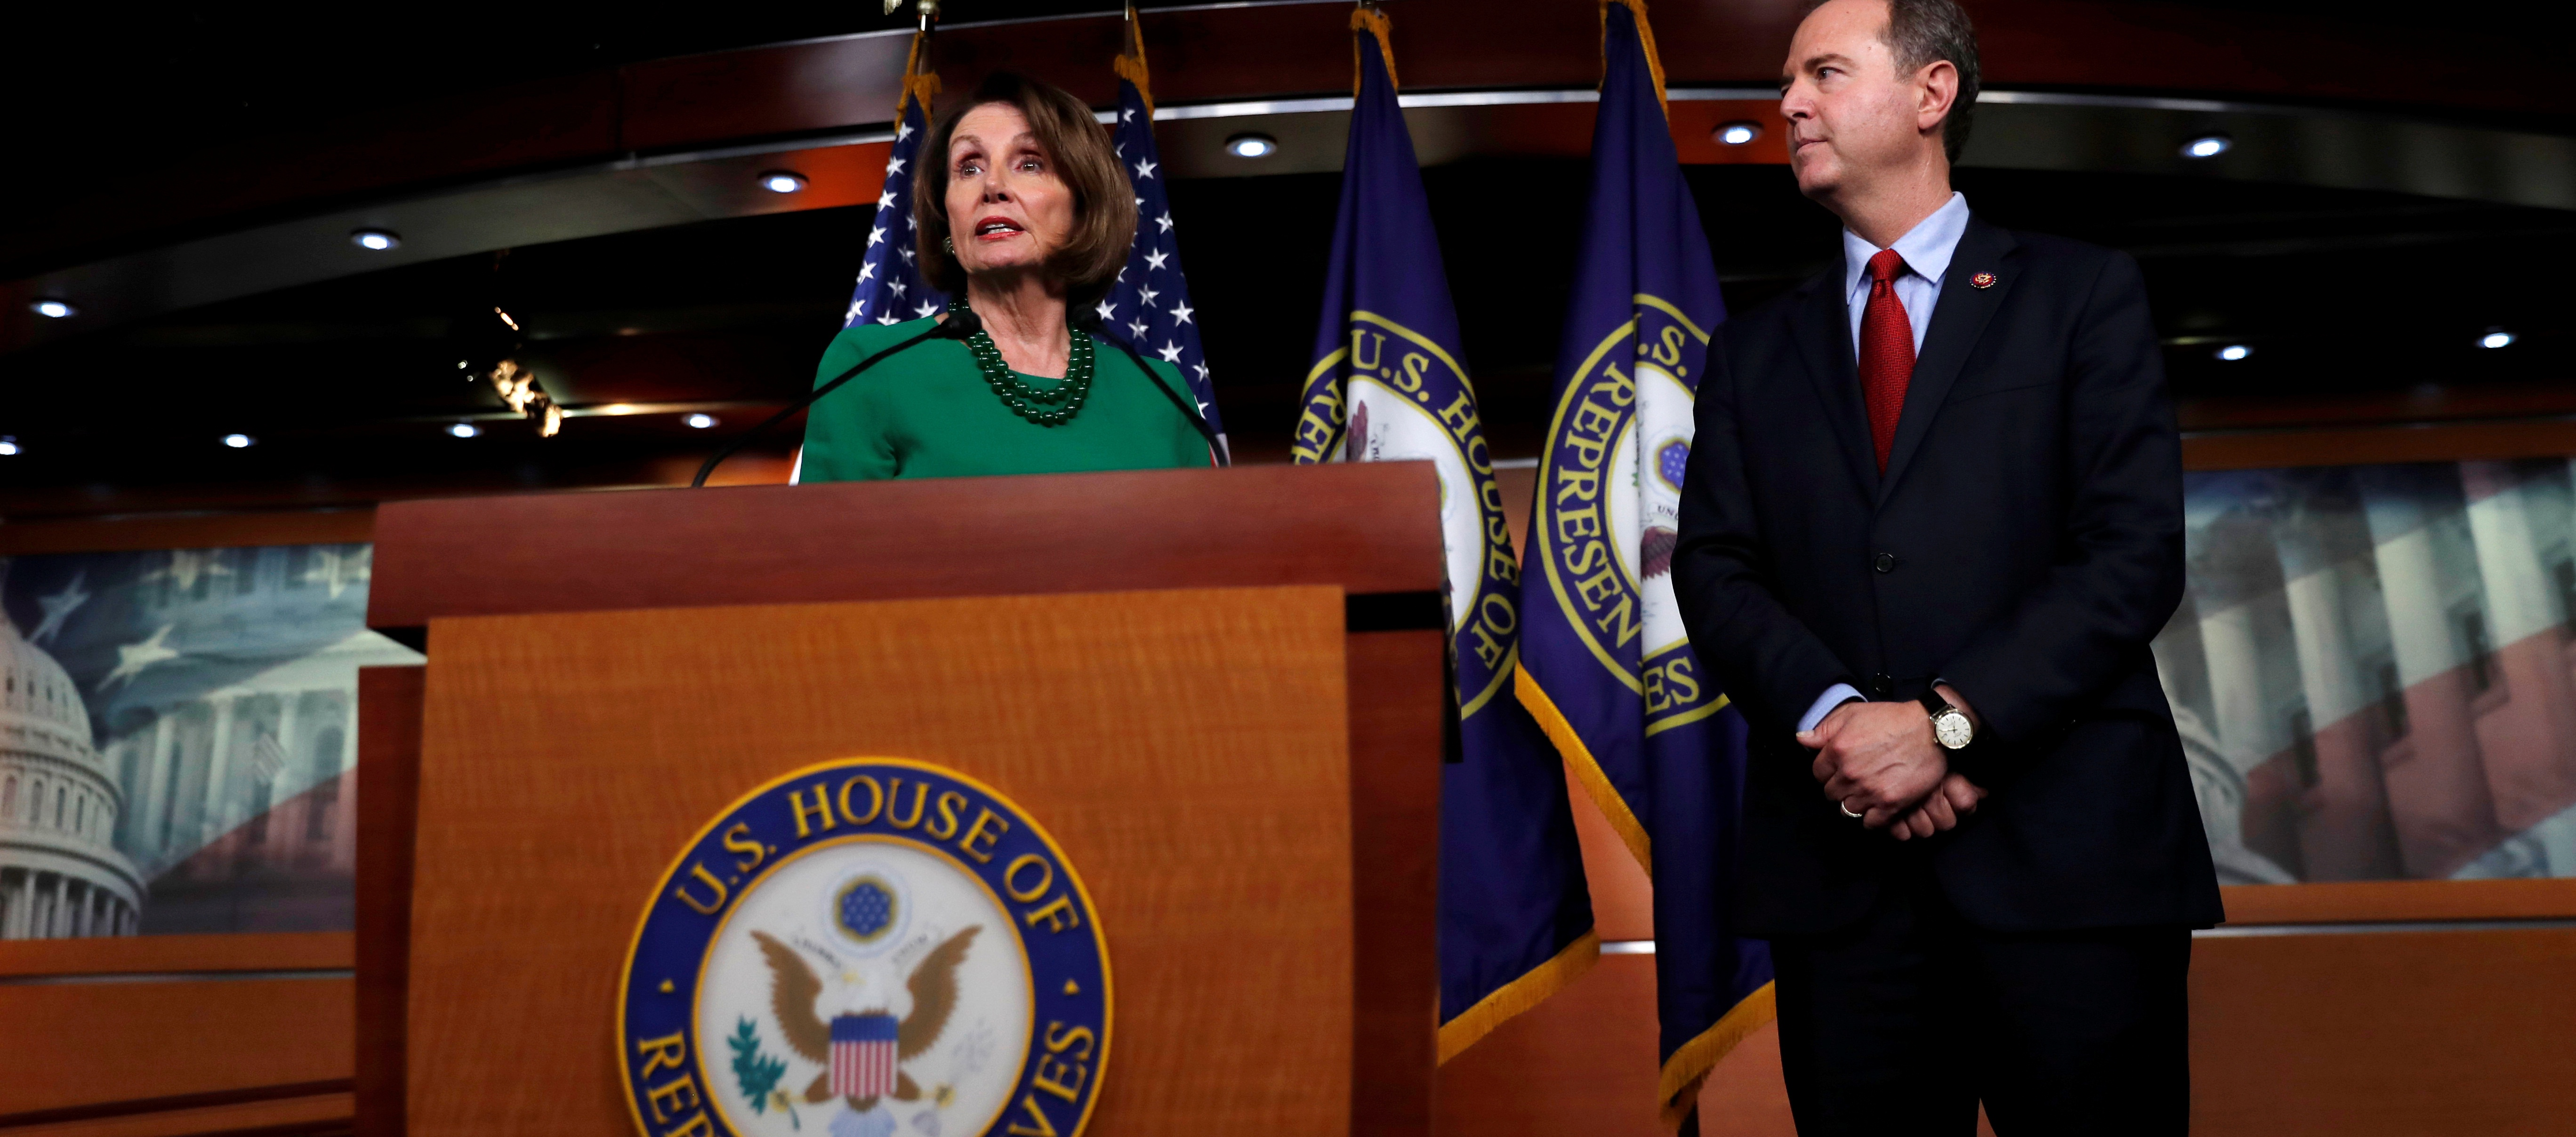 U.S. House Speaker Nancy Pelosi speaks next to House Intelligence Committee Chairman Adam Schiff regarding the impeachment inquiry of U.S. President Donald Trump on Capitol Hill in Washington, U.S., October 15, 2019. REUTERS/Carlos Jasso